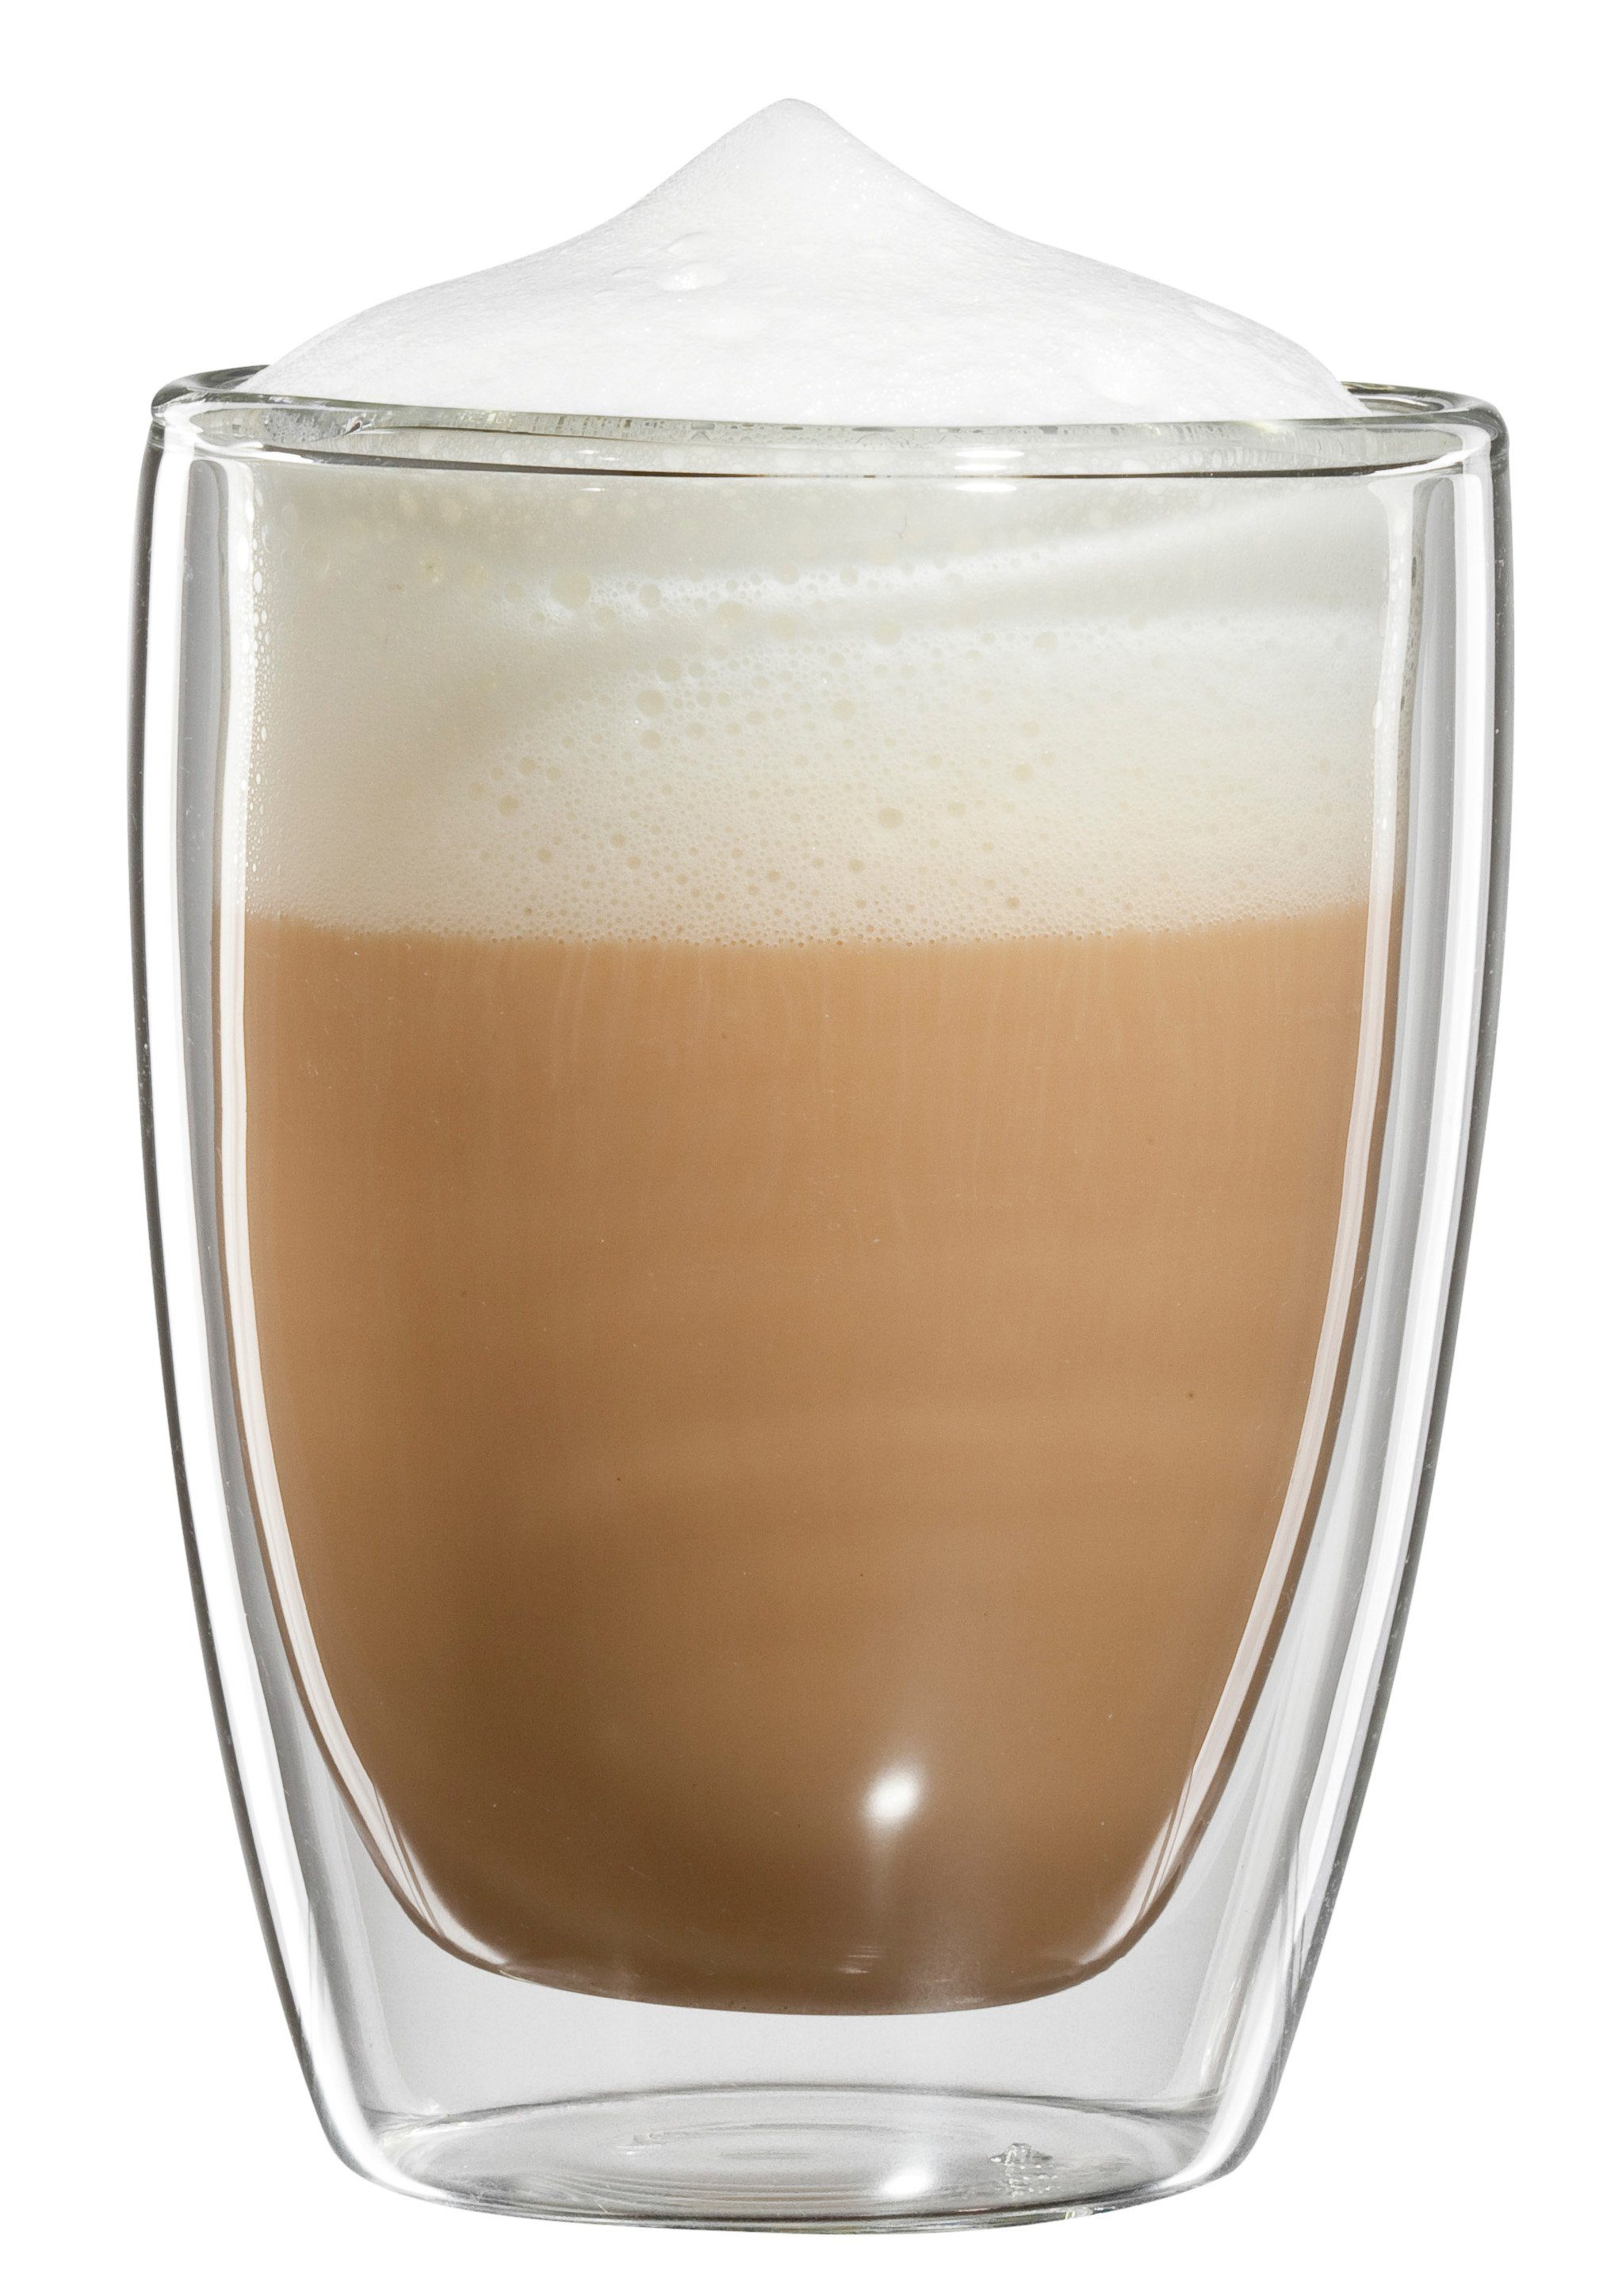 bloomix Cappuccino-Glas, 4er Set, »Roma«, 200 ml